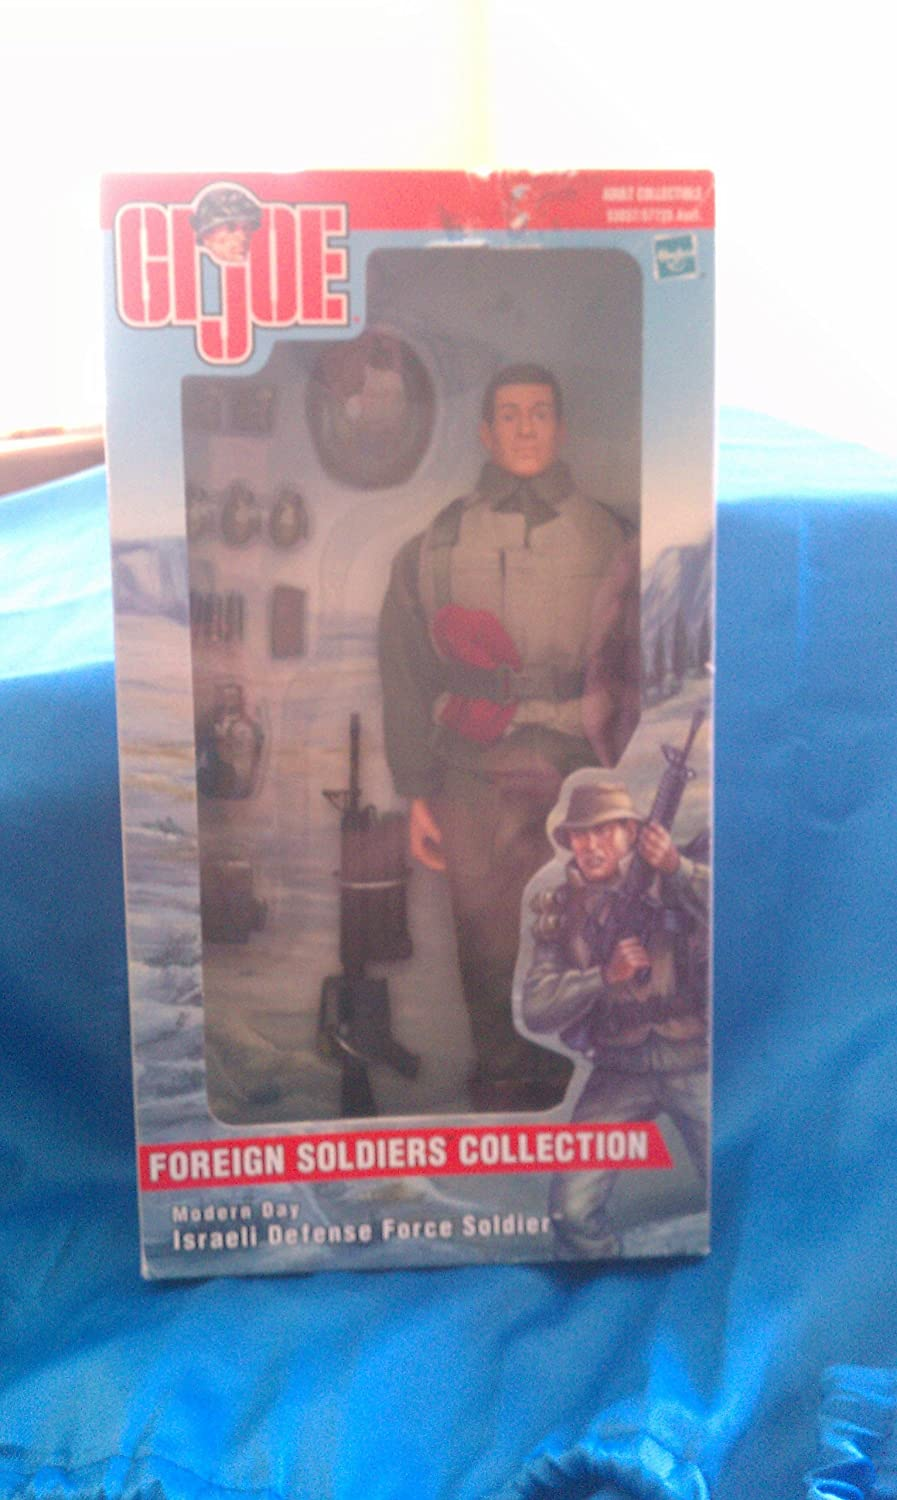 GI Joe Foreign Soldiers Collection Israeli Defense Force Soldier